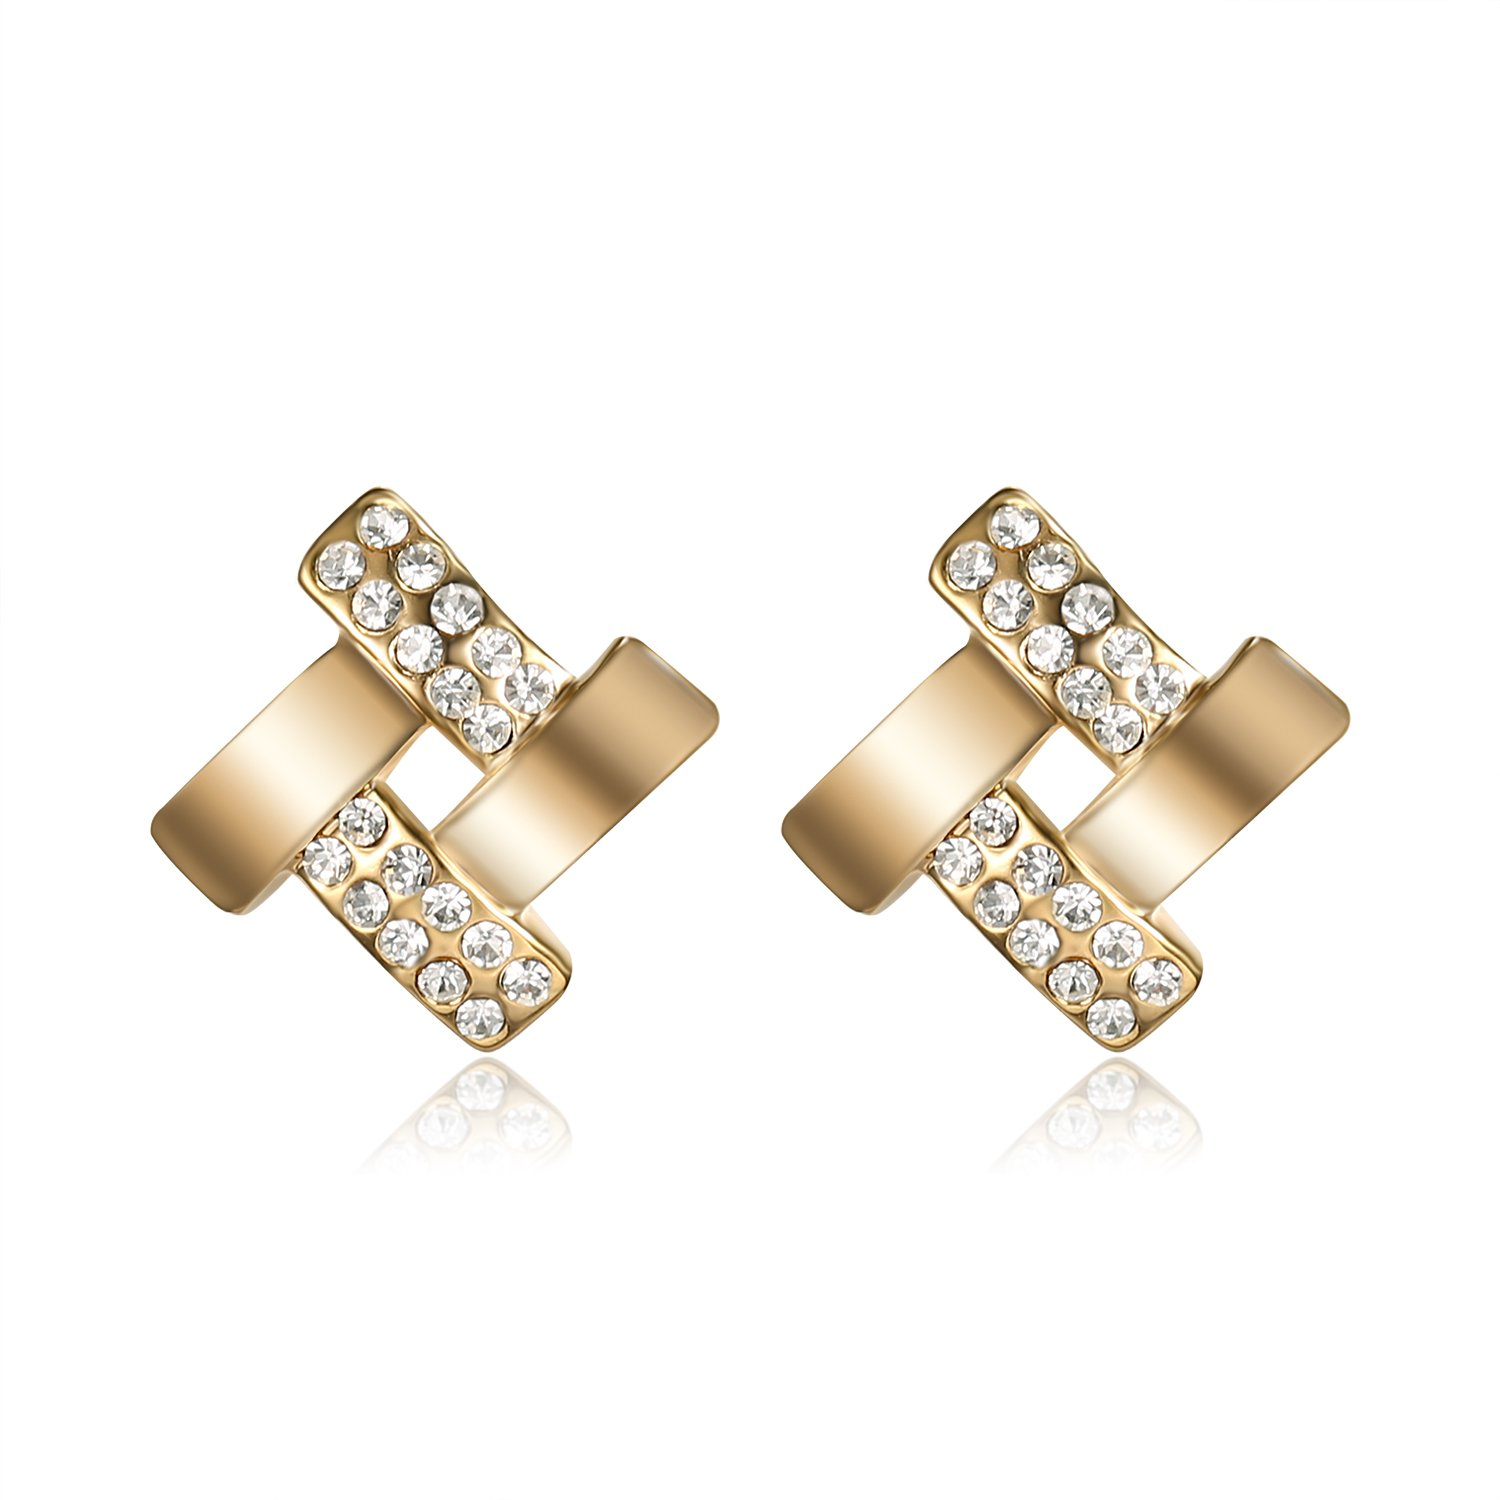 Lee Island Fashion Jewelry 18K Gold Plated Austrian Crystal Love Knot Stud Earrings For Woman Girl Gift-Gift Packing MSRP USD 120 EH0007